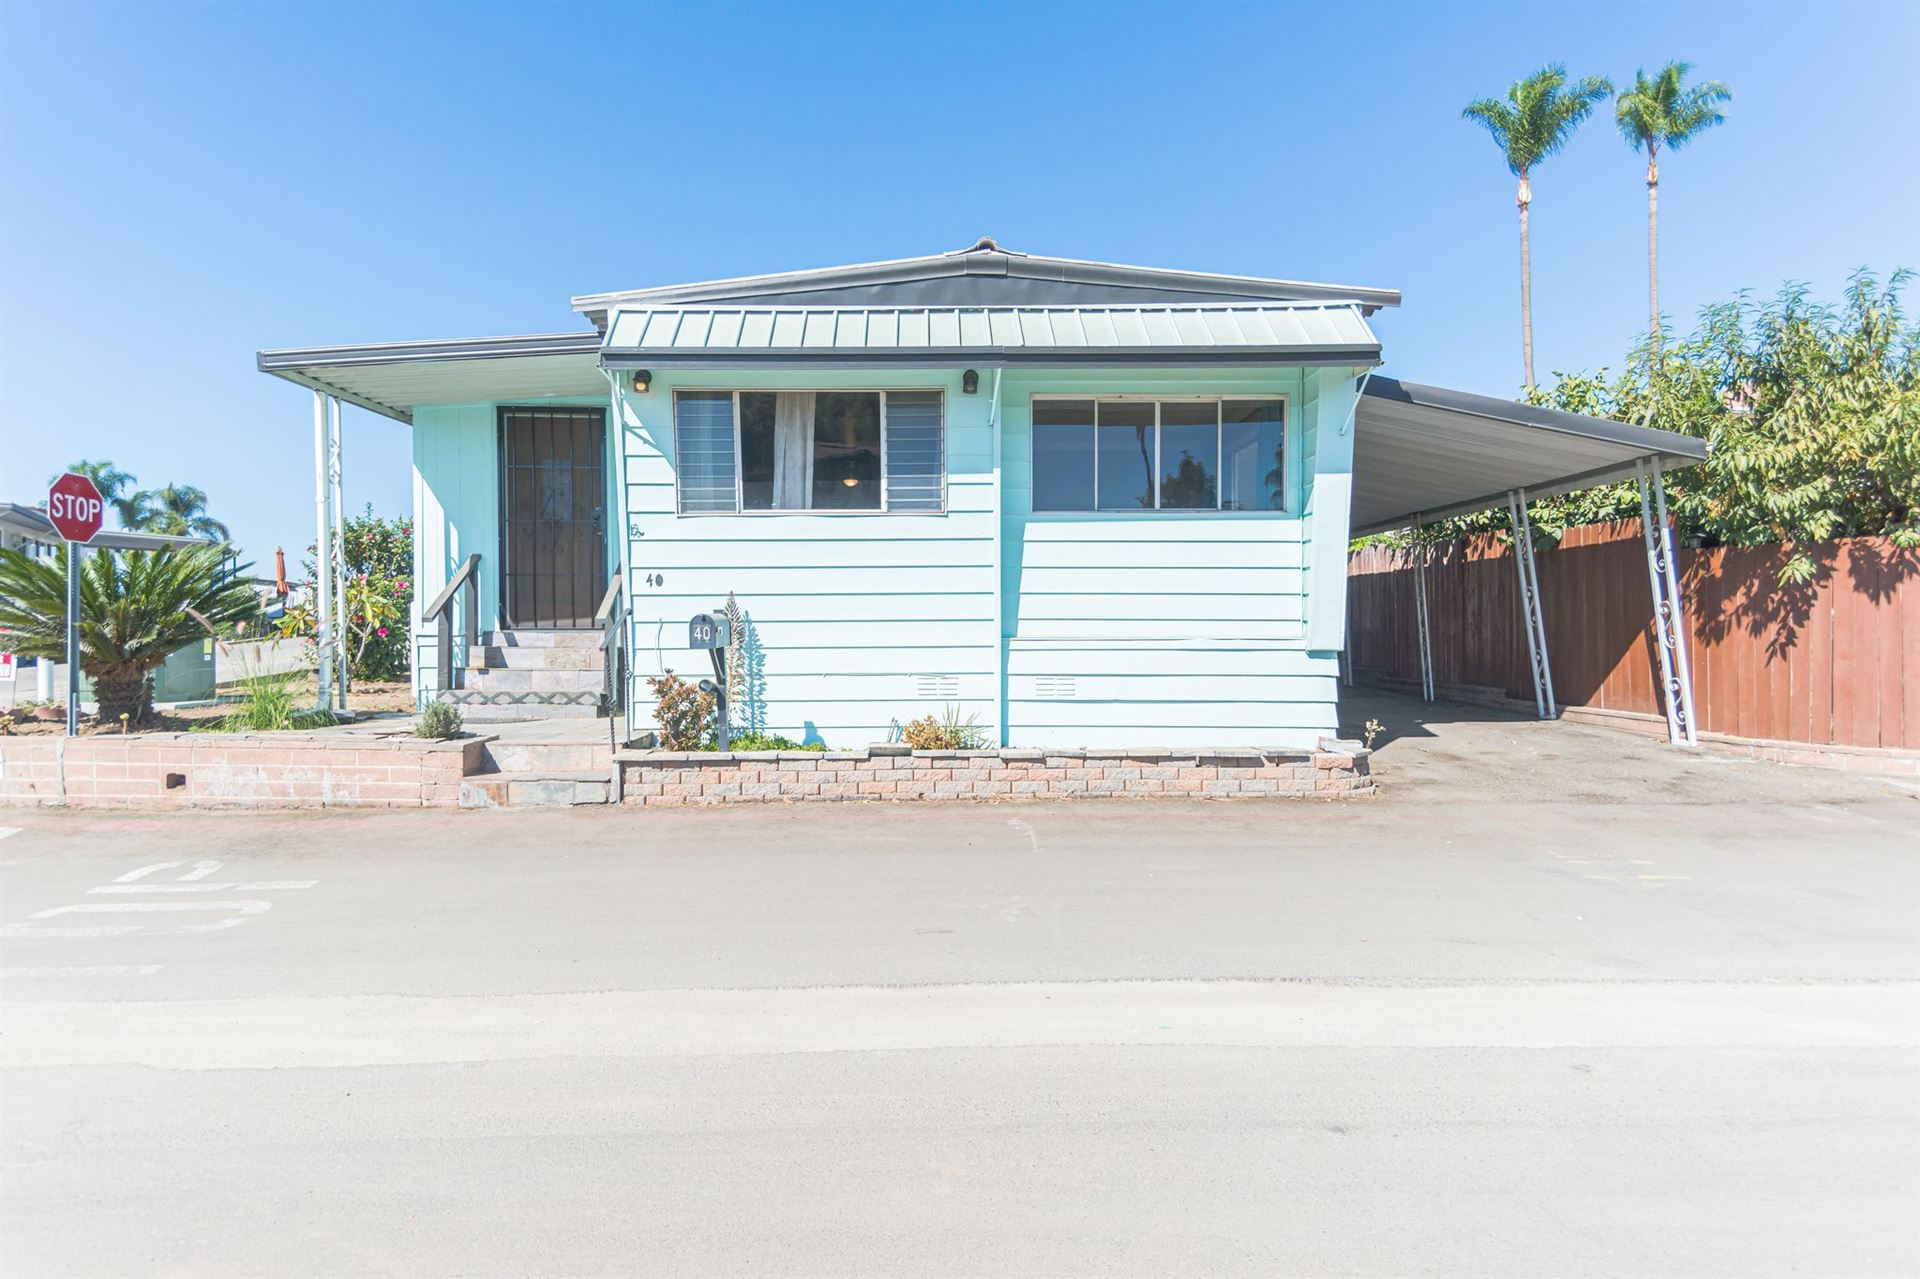 Photo of 200 Olive Ave, Vista, CA 92083 (MLS # 200051290)